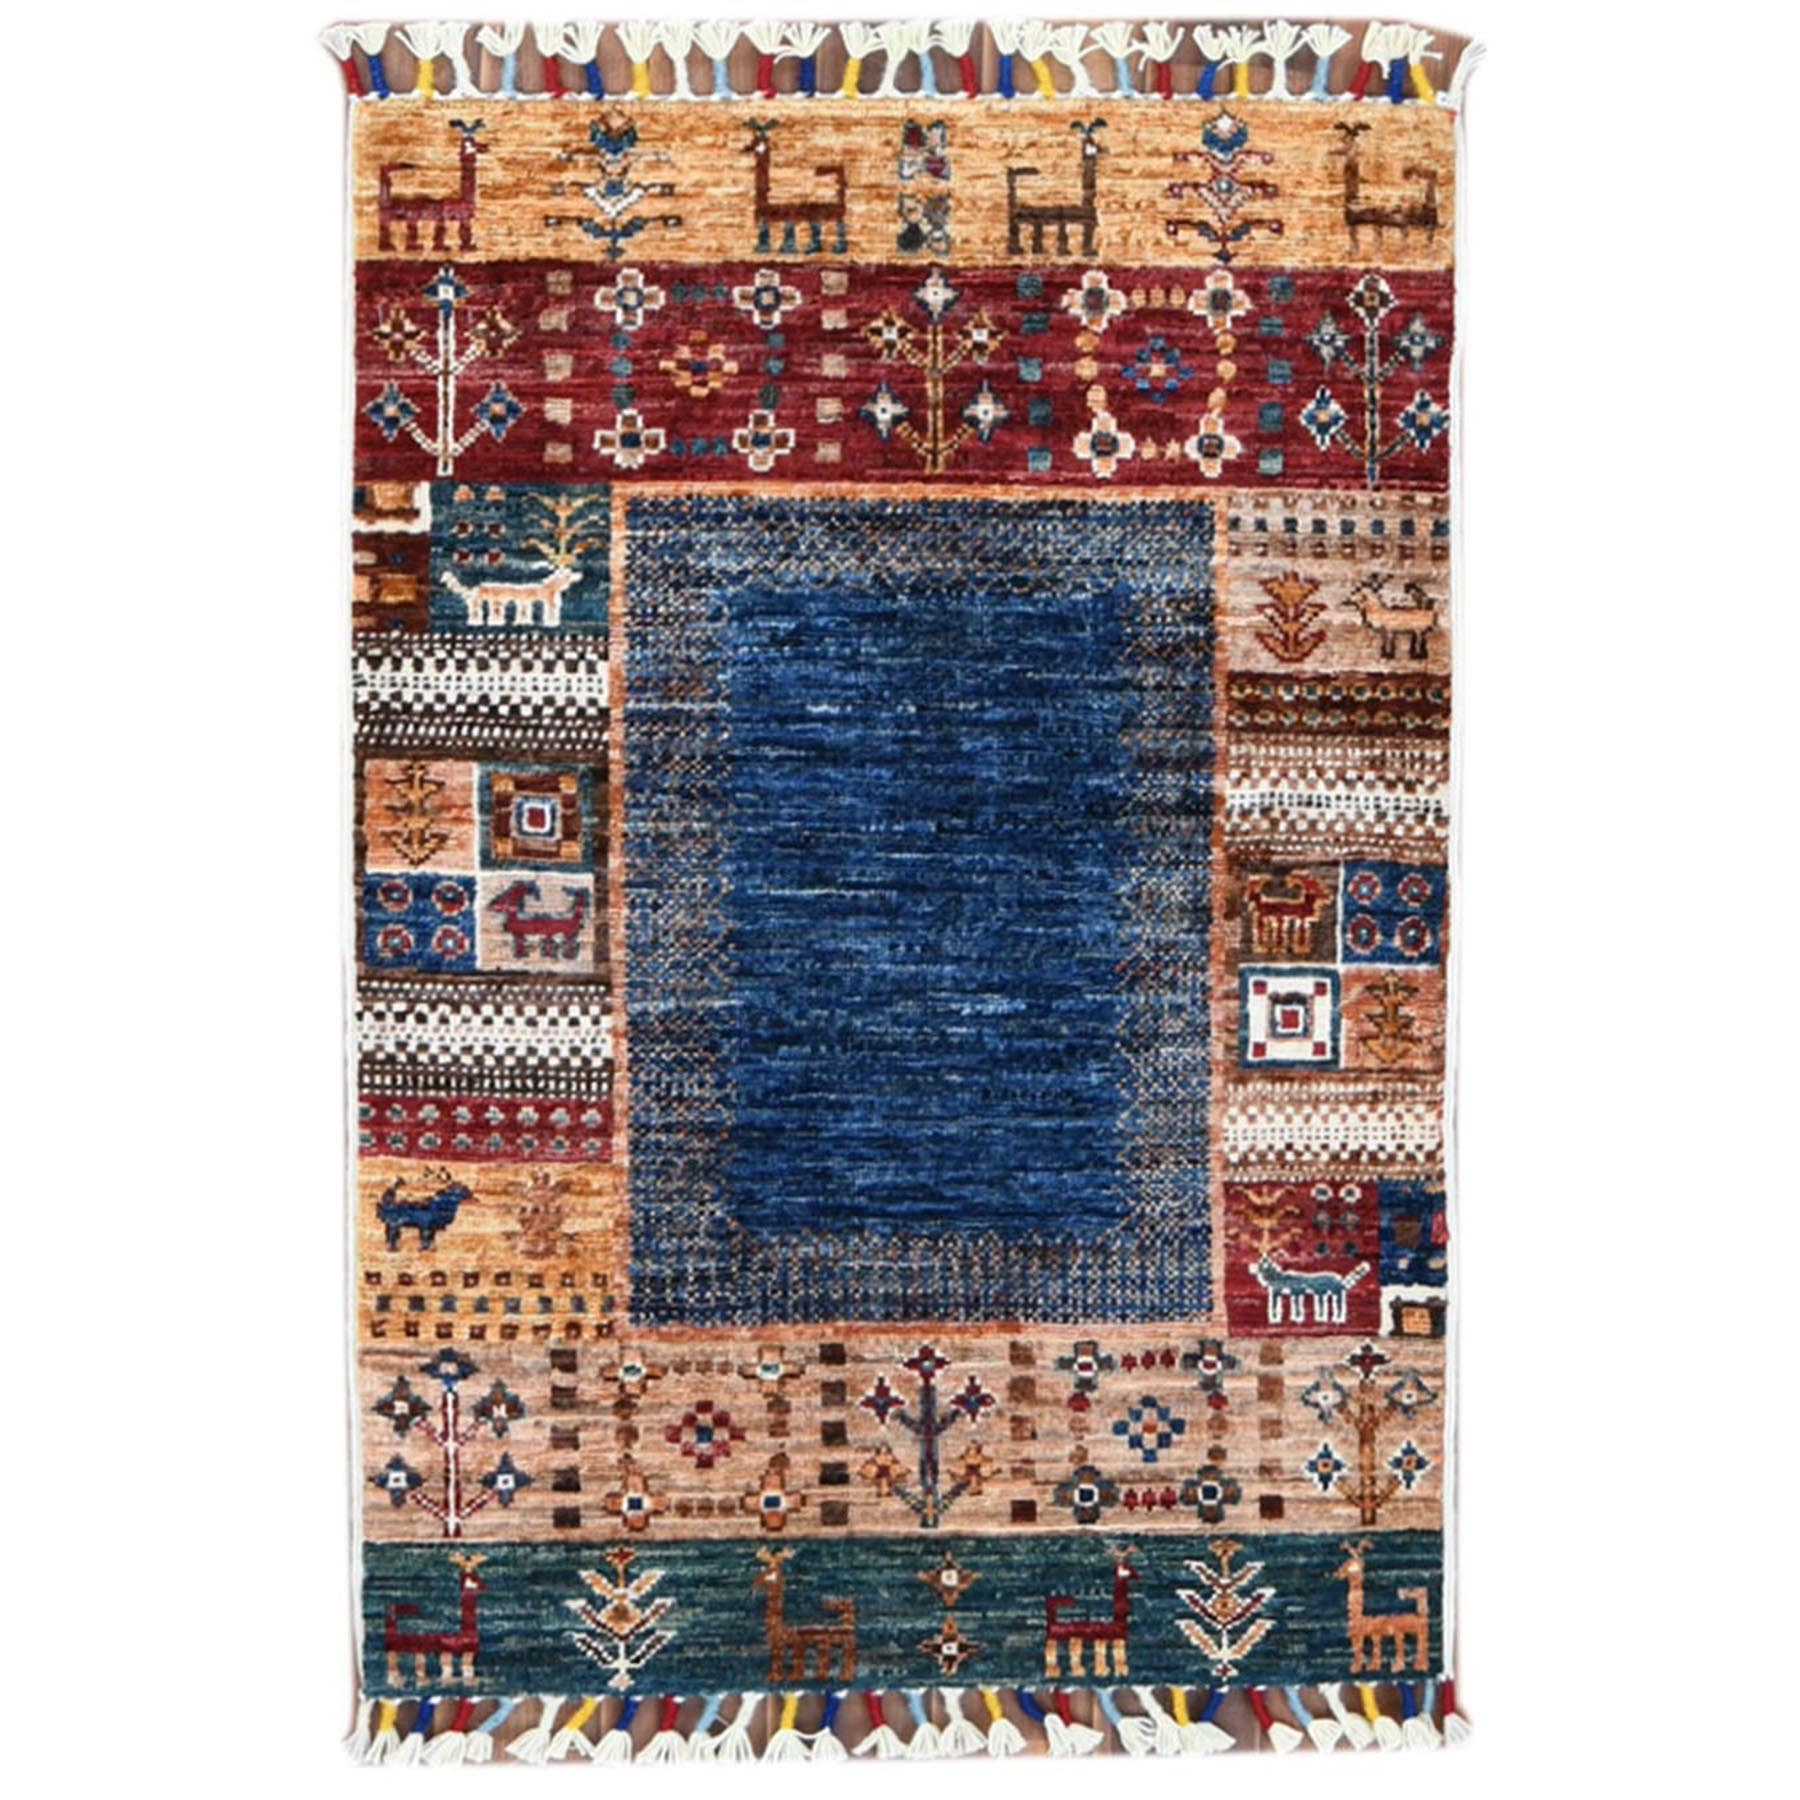 2'x3' Hand Knotted Blue Little Deers Super Kazak Khorjin With Kashkuli Design Natural Wool Oriental Rug